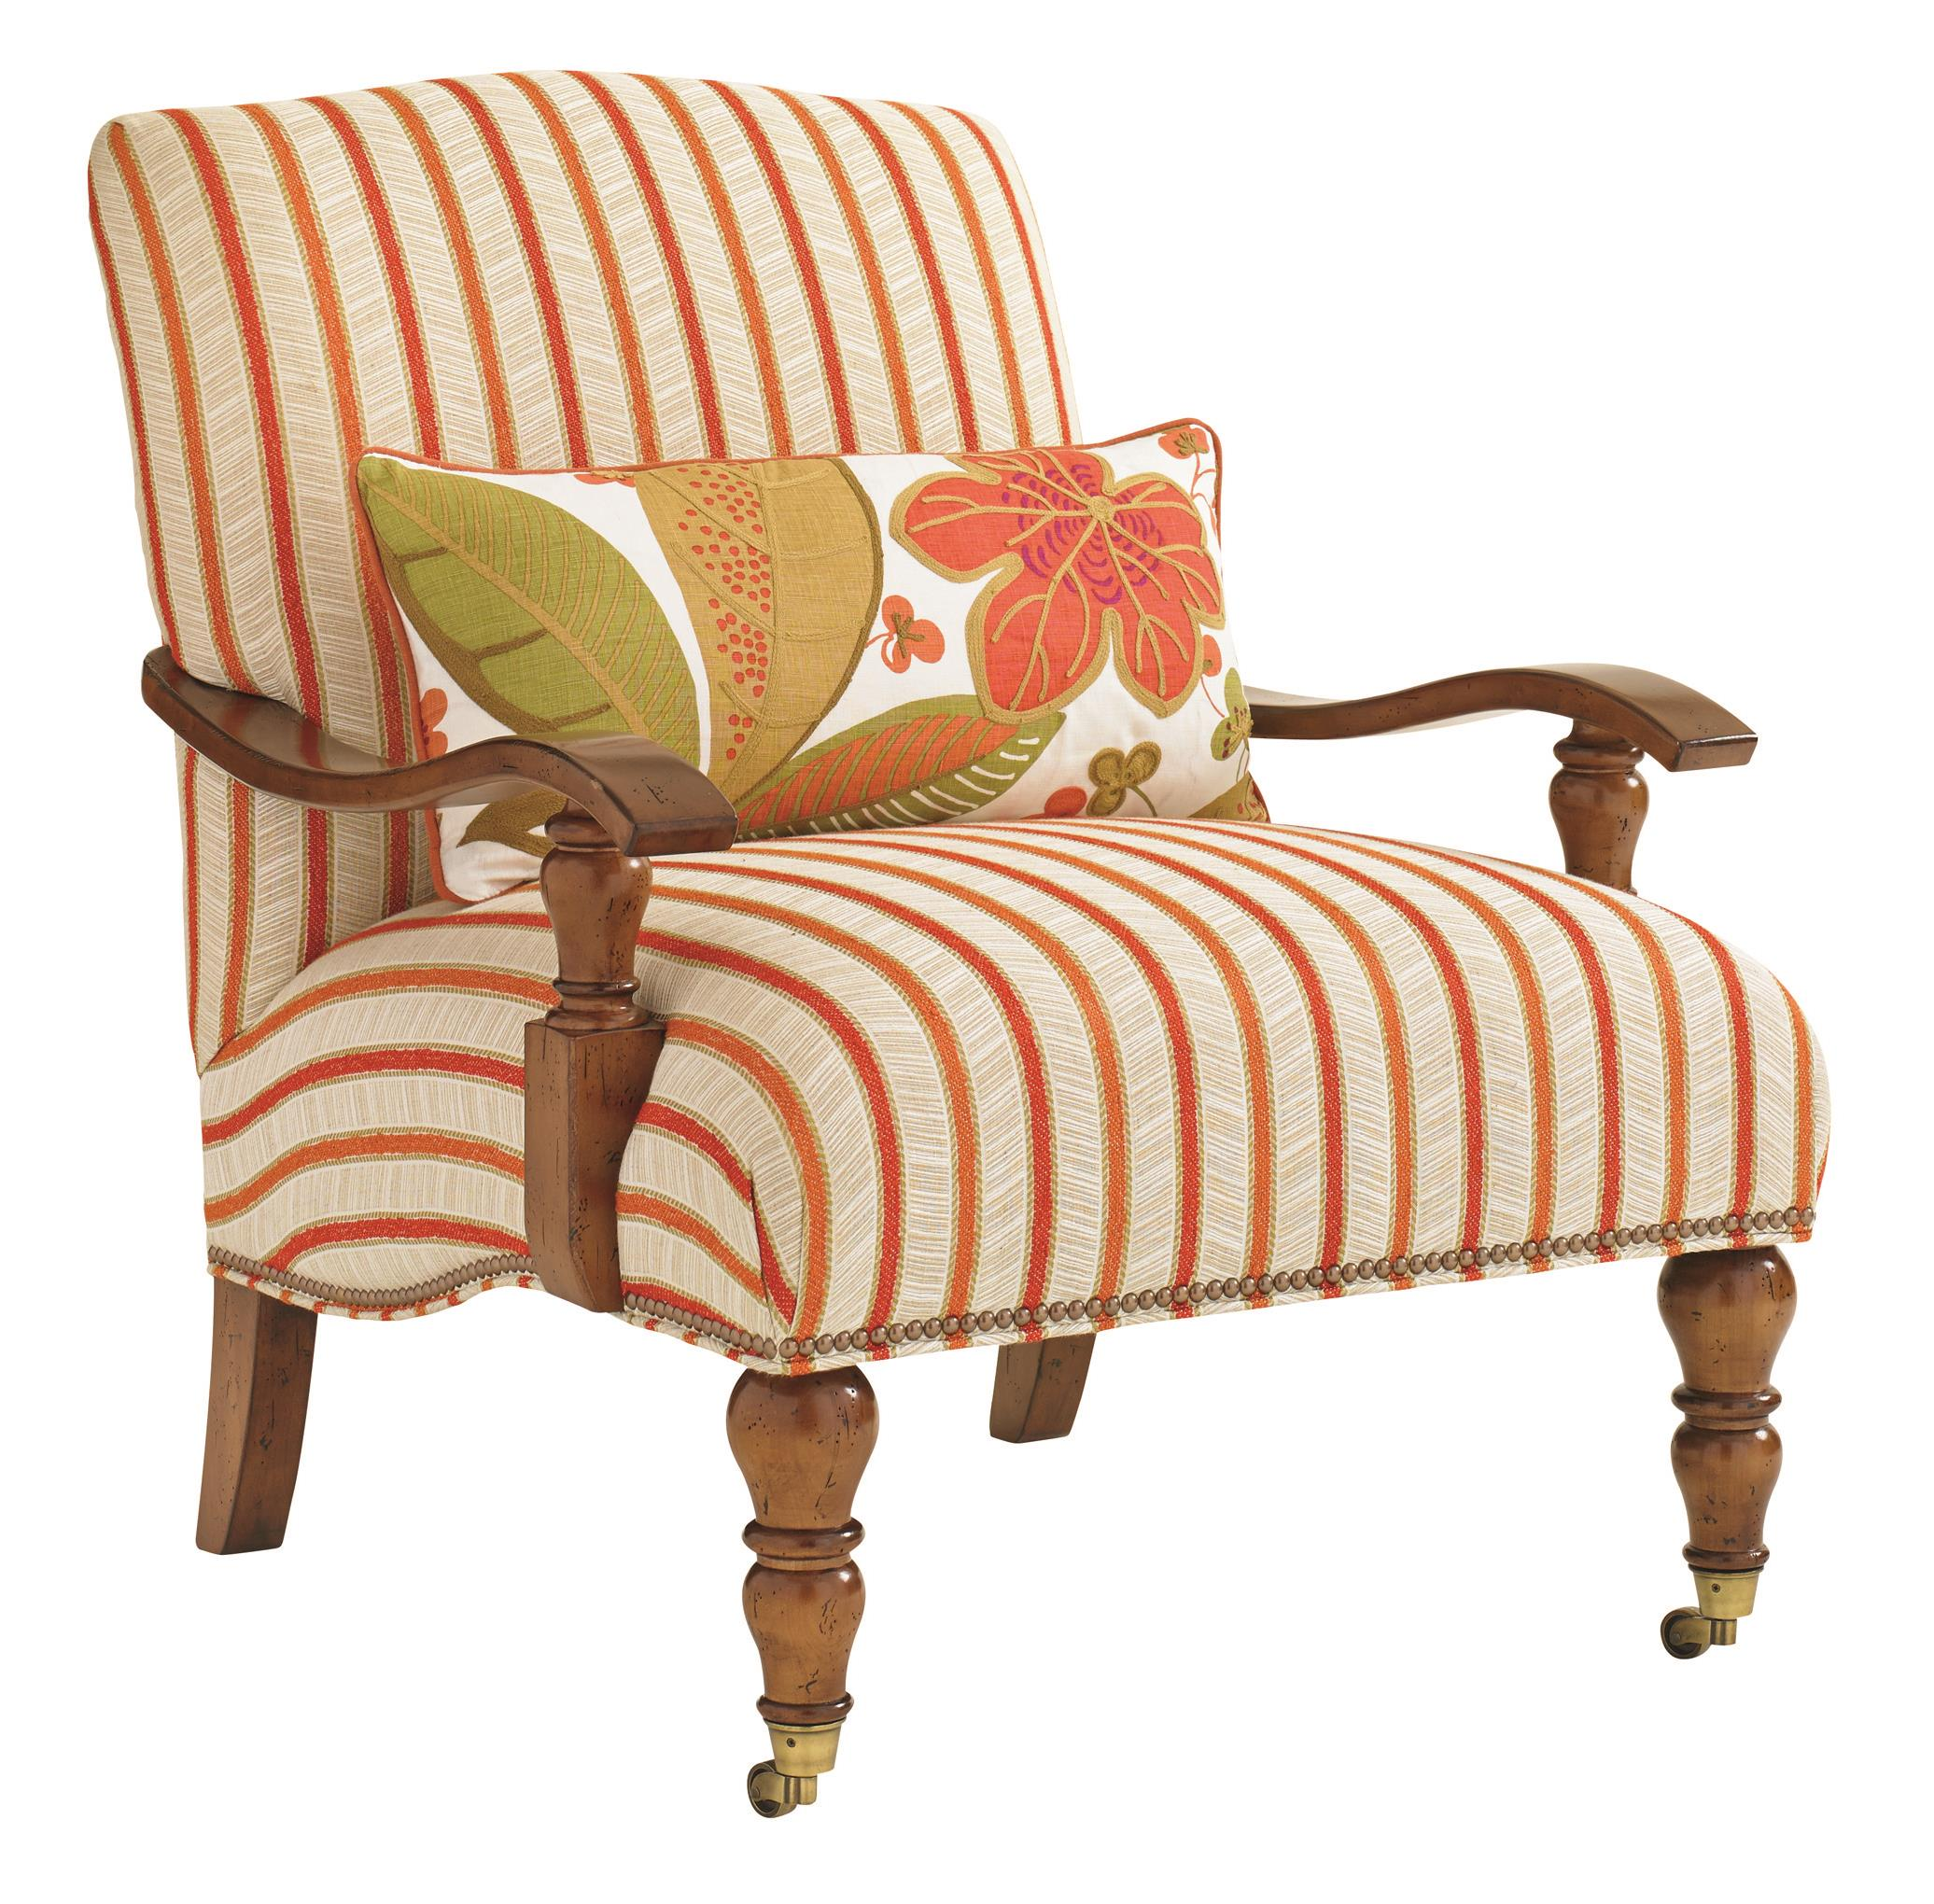 Bali Hai San Carlos Chair by Tommy Bahama Home at Baer's Furniture